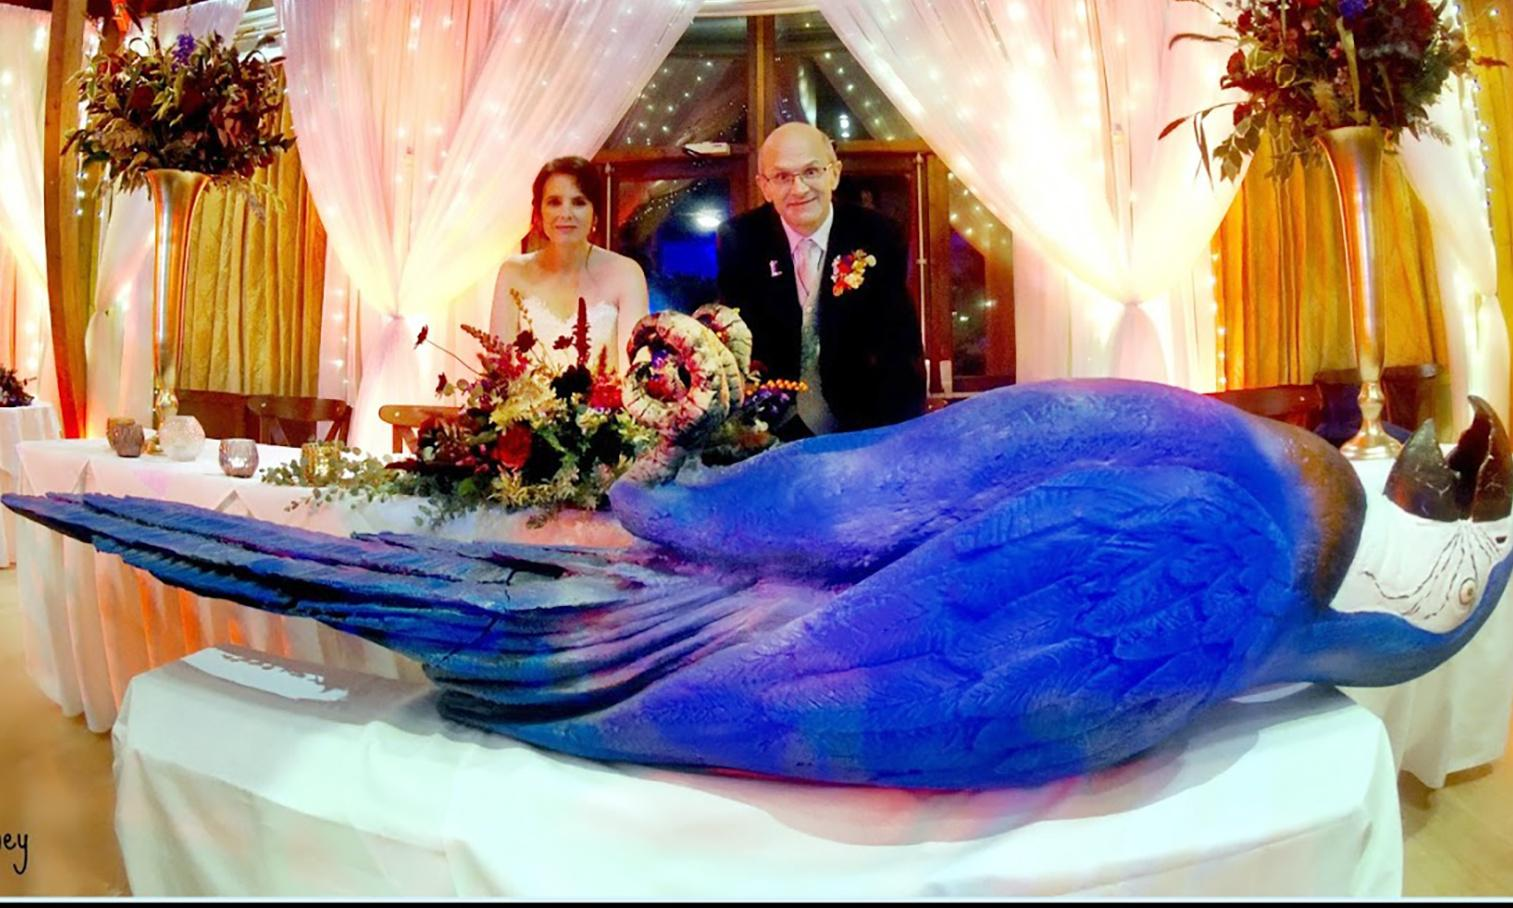 Spam, dead parrot and a giant foot: Monty Python fans' themed wedding